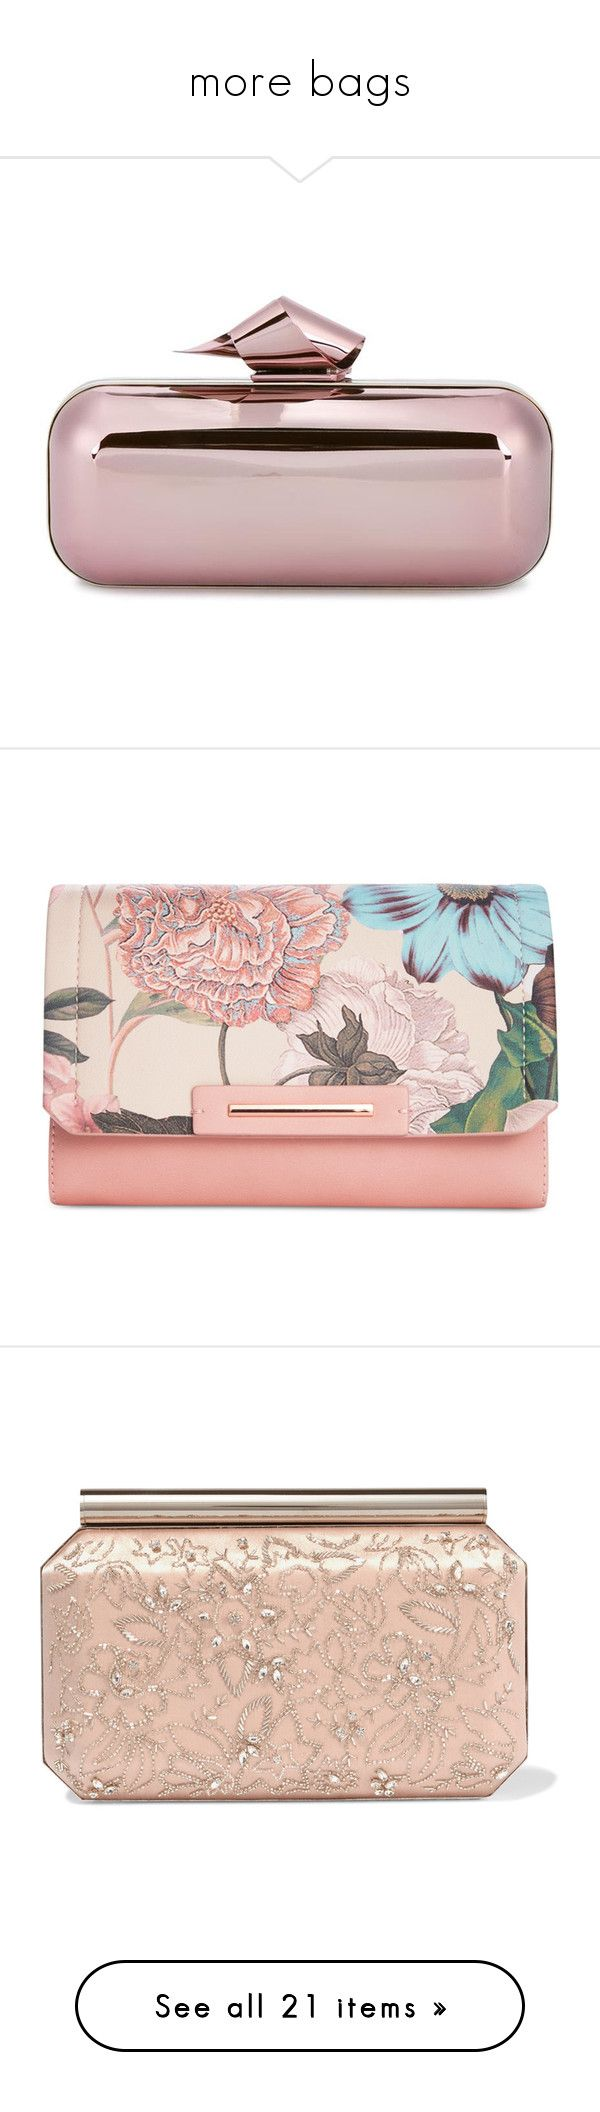 """""""more bags"""" by lustydame ❤ liked on Polyvore featuring bags, handbags, clutches, blue, genuine leather handbags, leather purses, kiss-lock handbags, blue handbags, blue leather handbags and pink metallic handbag"""